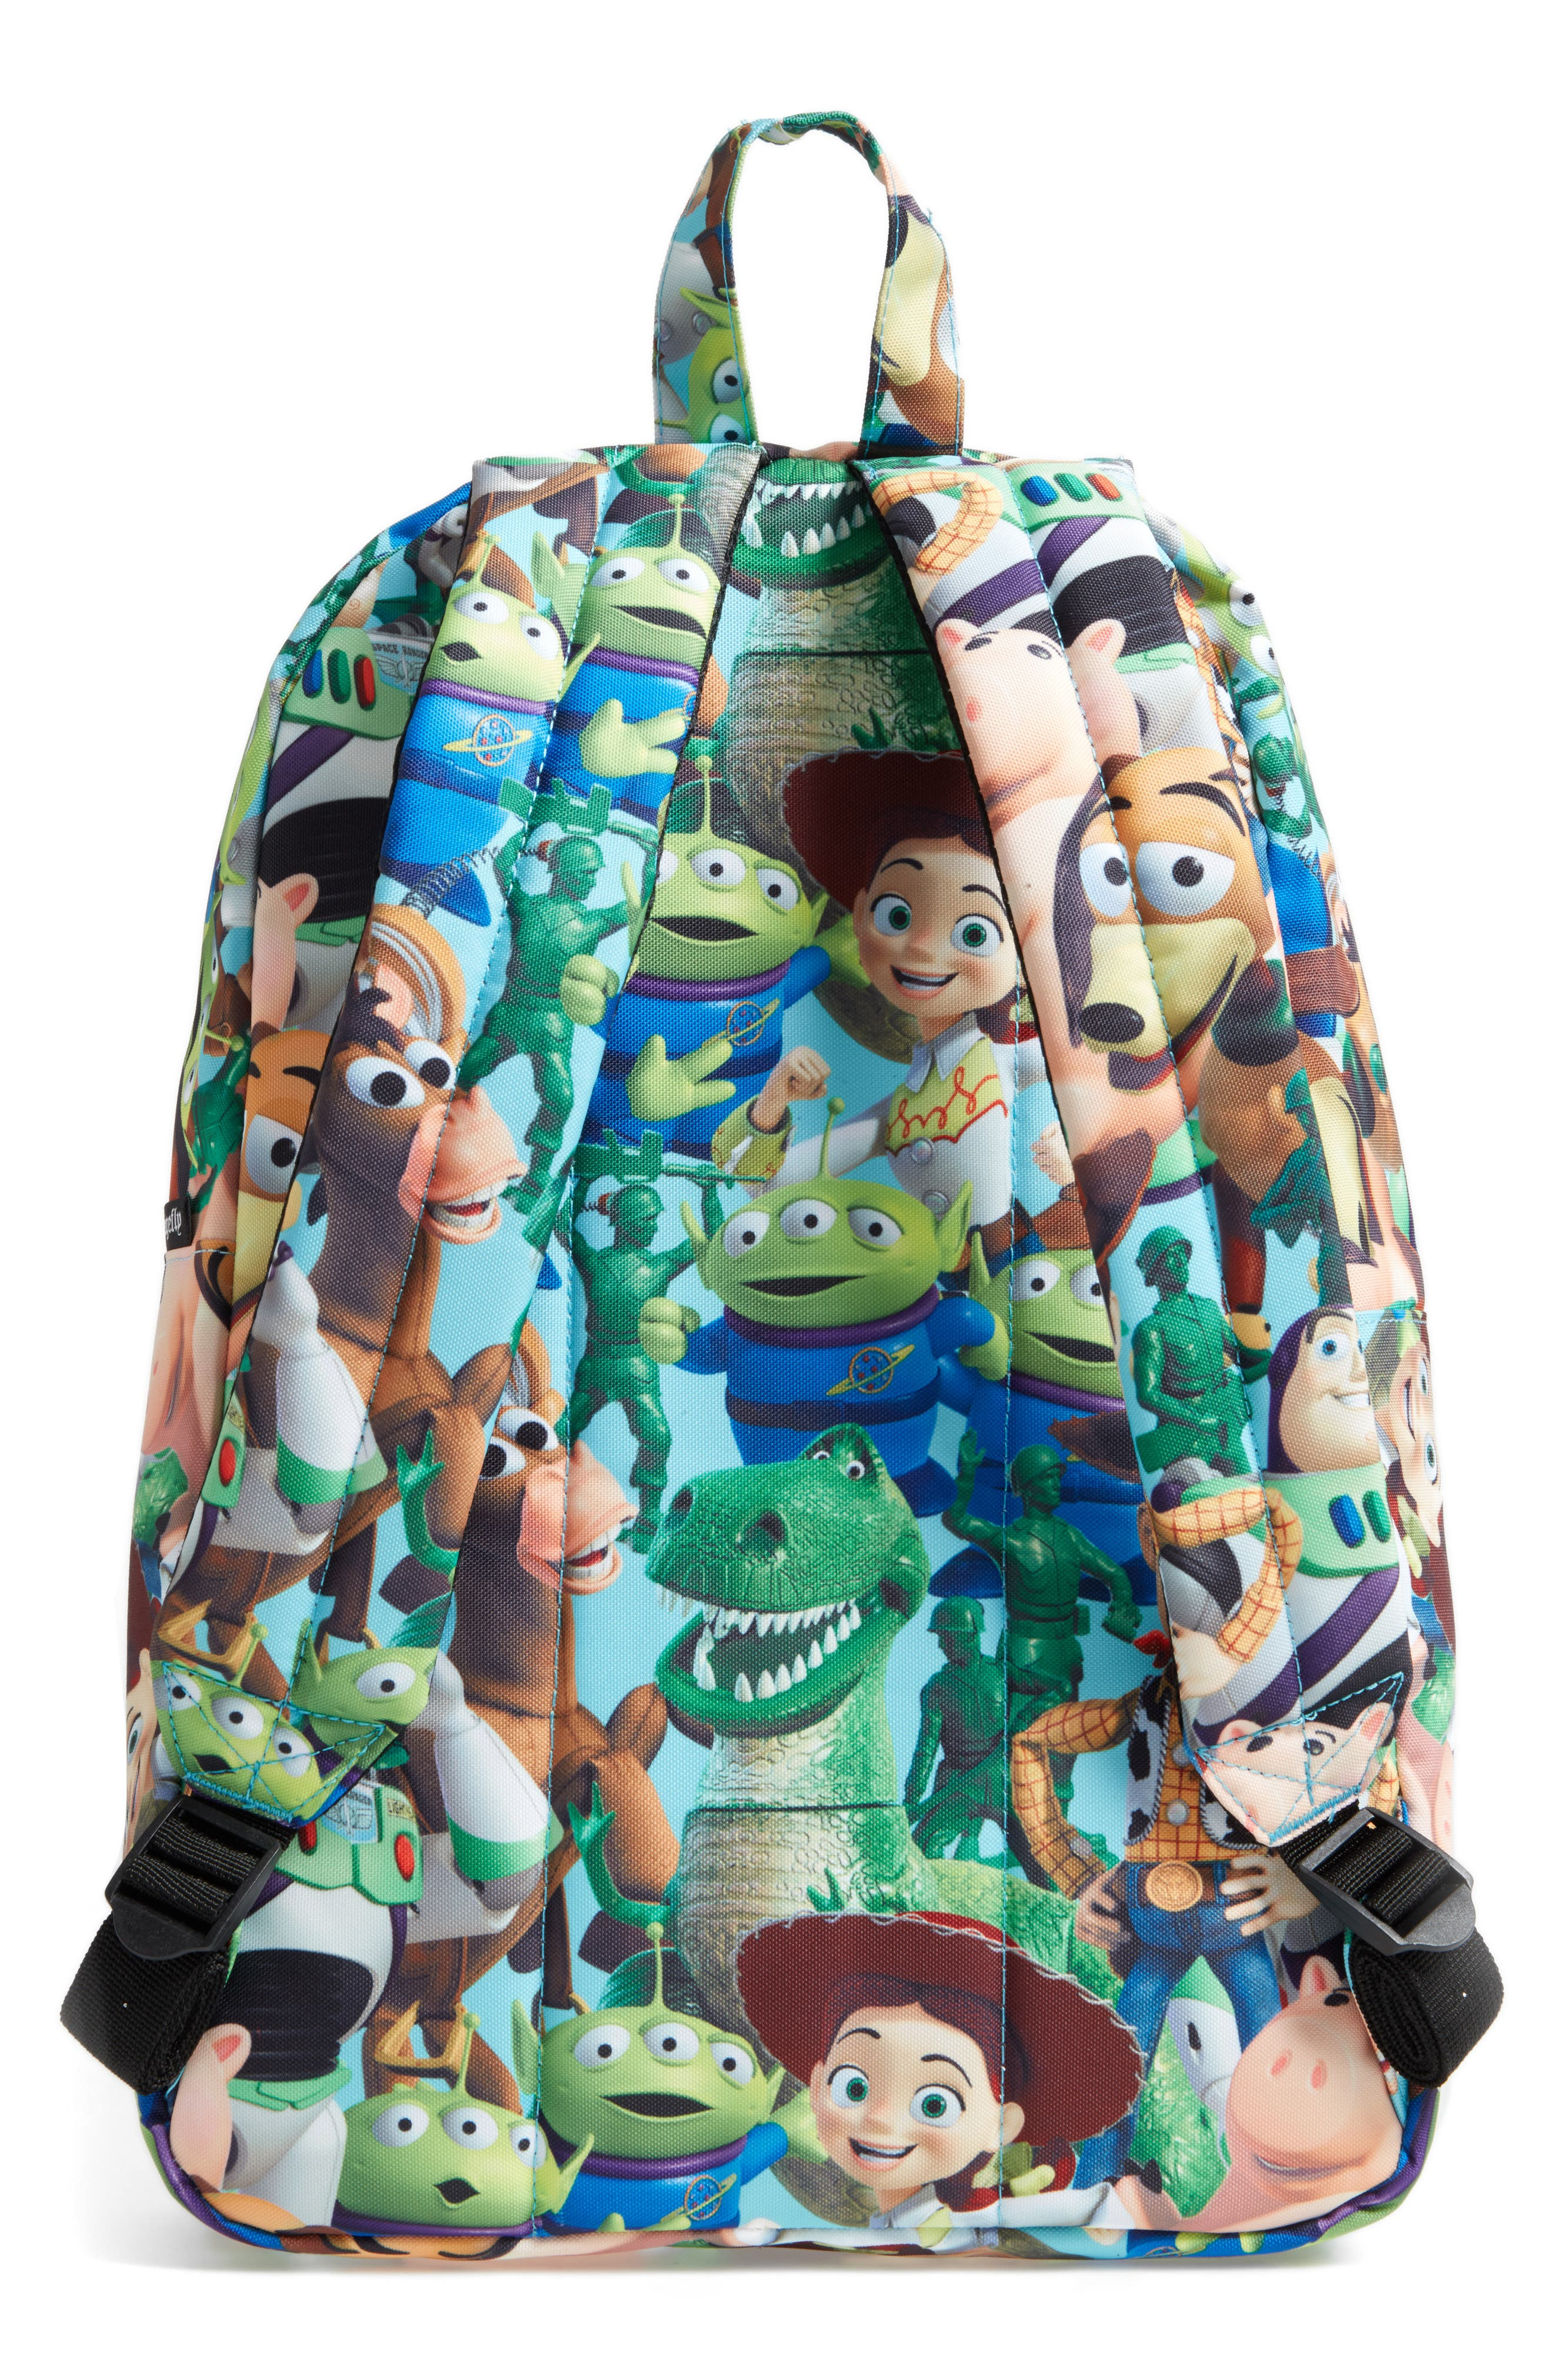 Disney<sup>®</sup> Toy Story Backpack,                             Alternate thumbnail 2, color,                             460